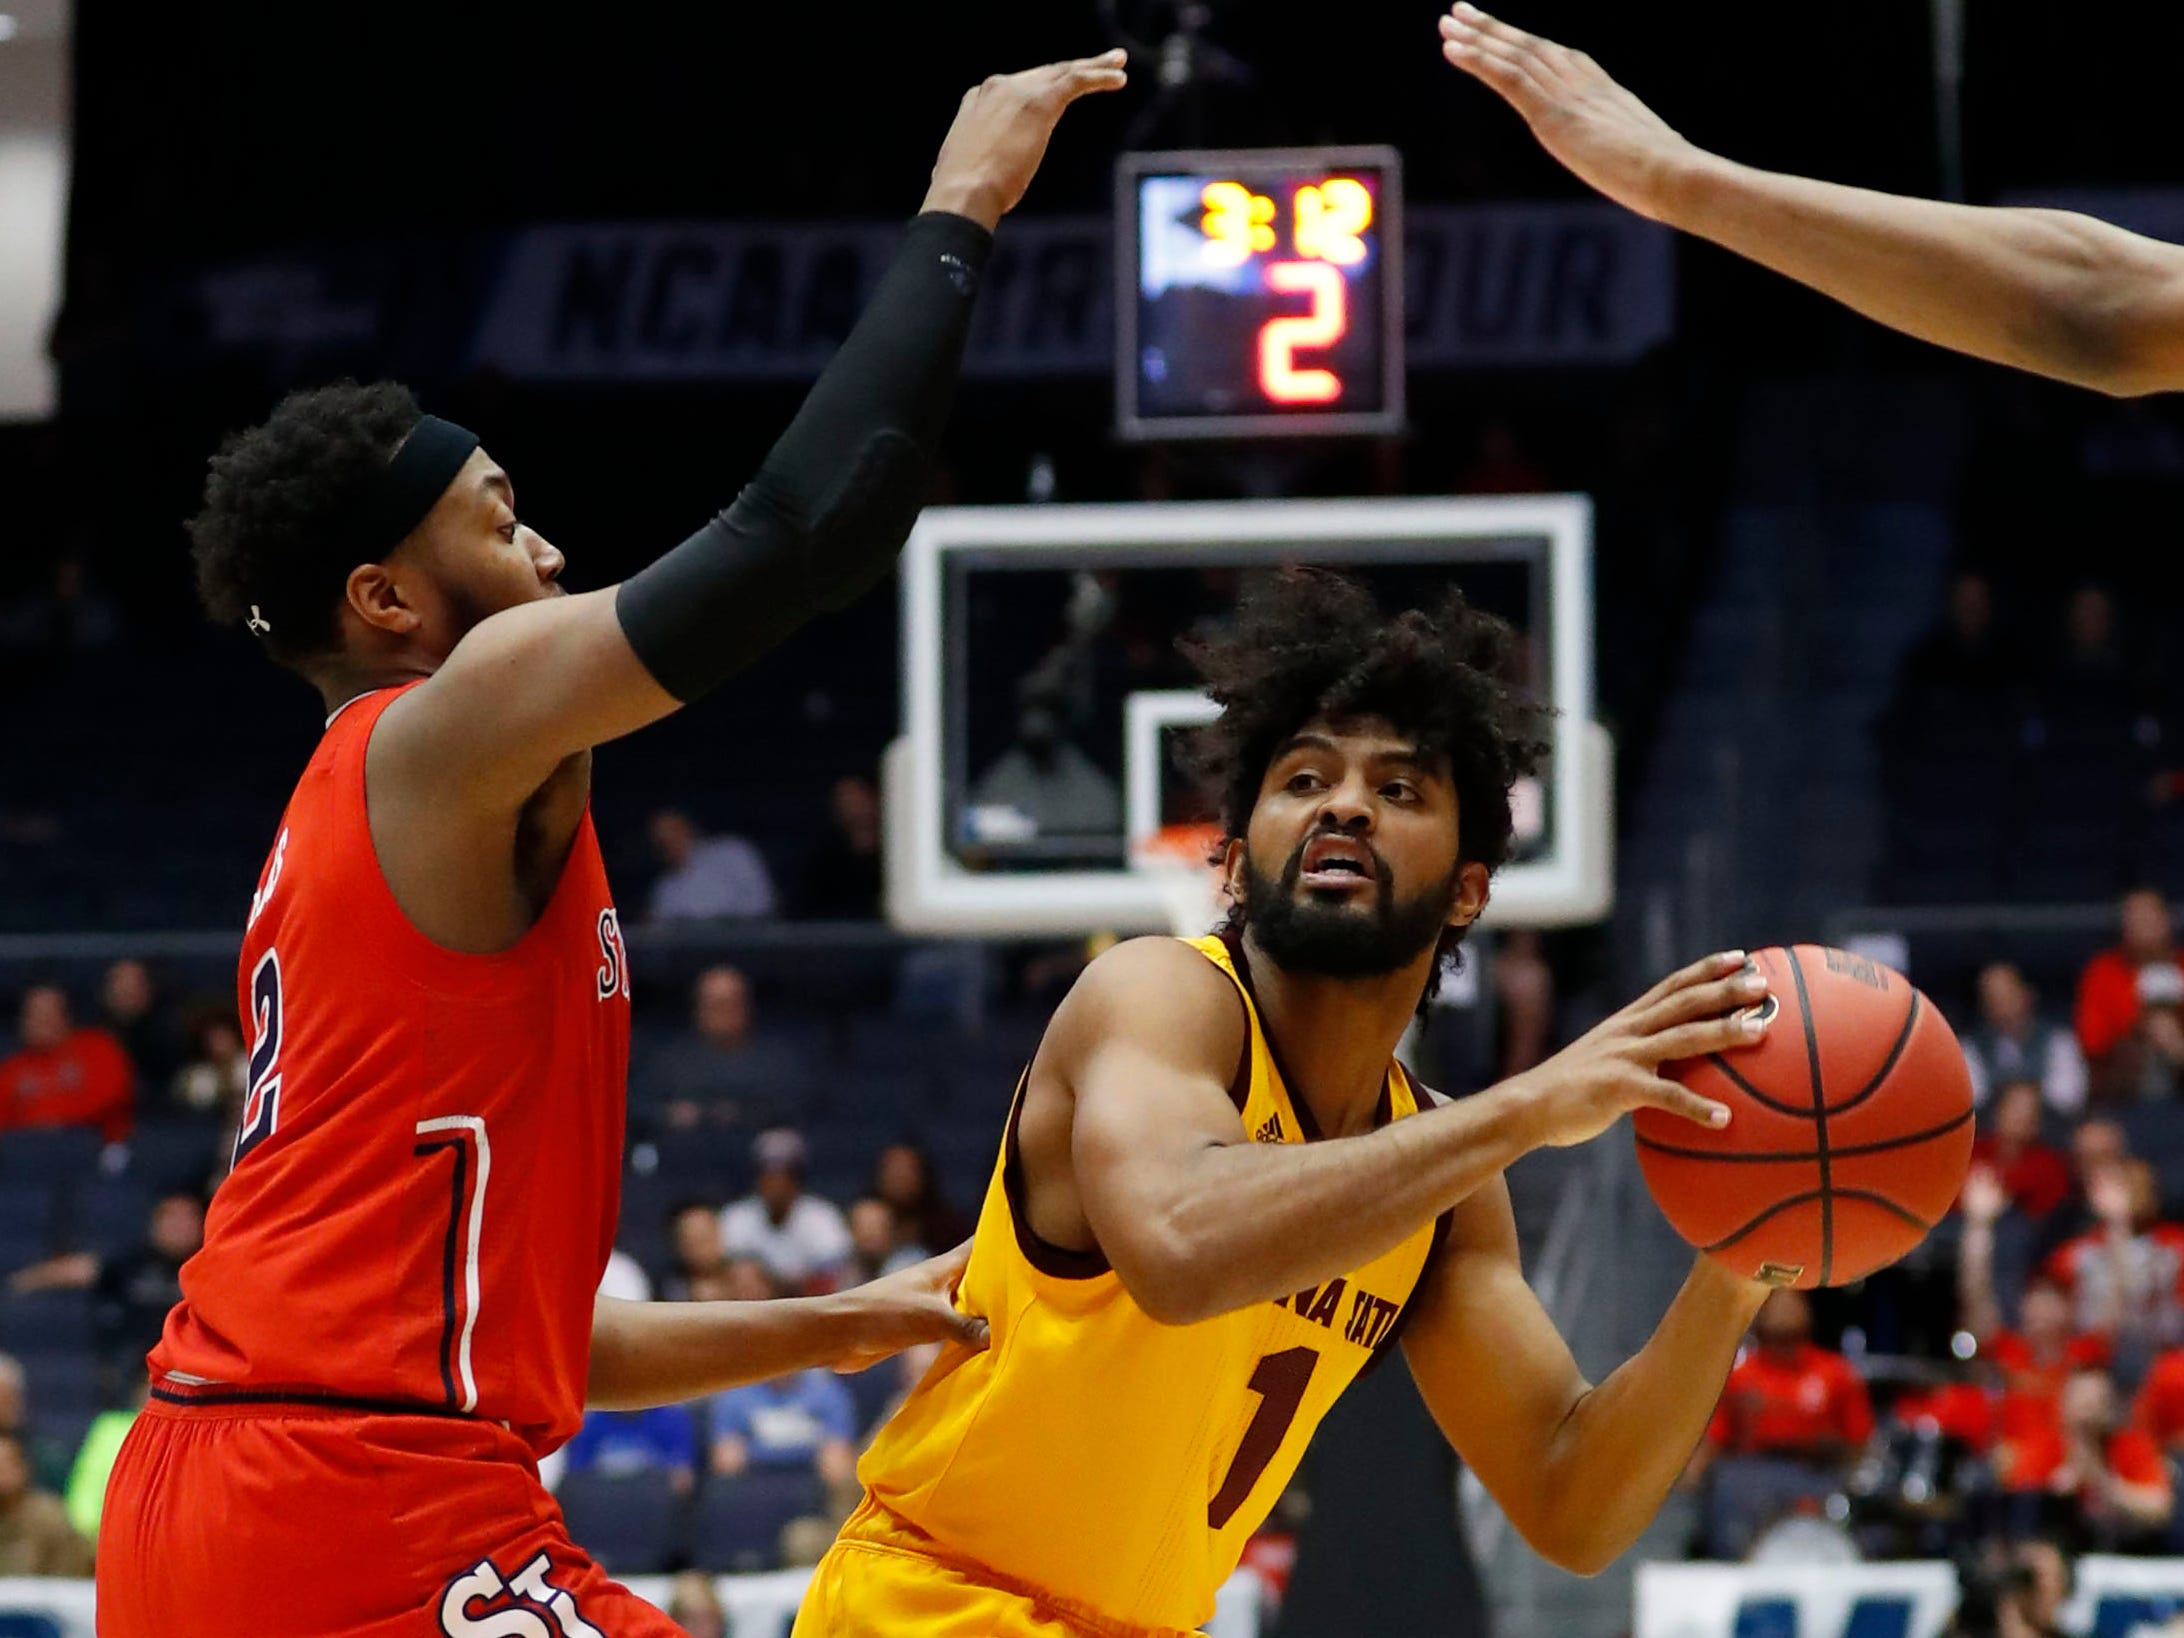 Mar 20, 2019; Dayton, OH, USA; Arizona State Sun Devils guard Remy Martin (1) looks to move the ball defended by St. John's Red Storm guard Shamorie Ponds (2) 2hin the First Four of the 2019 NCAA Tournament at Dayton Arena. Mandatory Credit: Rick Osentoski-USA TODAY Sports